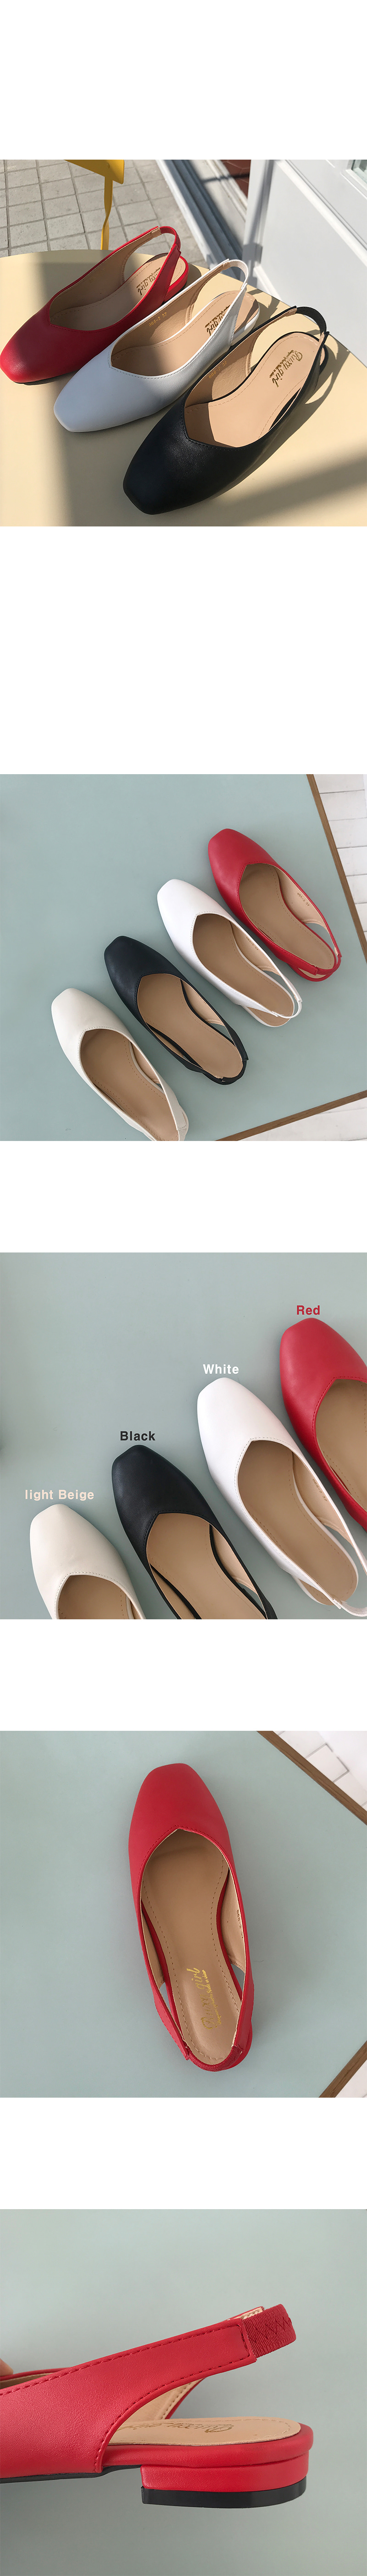 2 way shoes